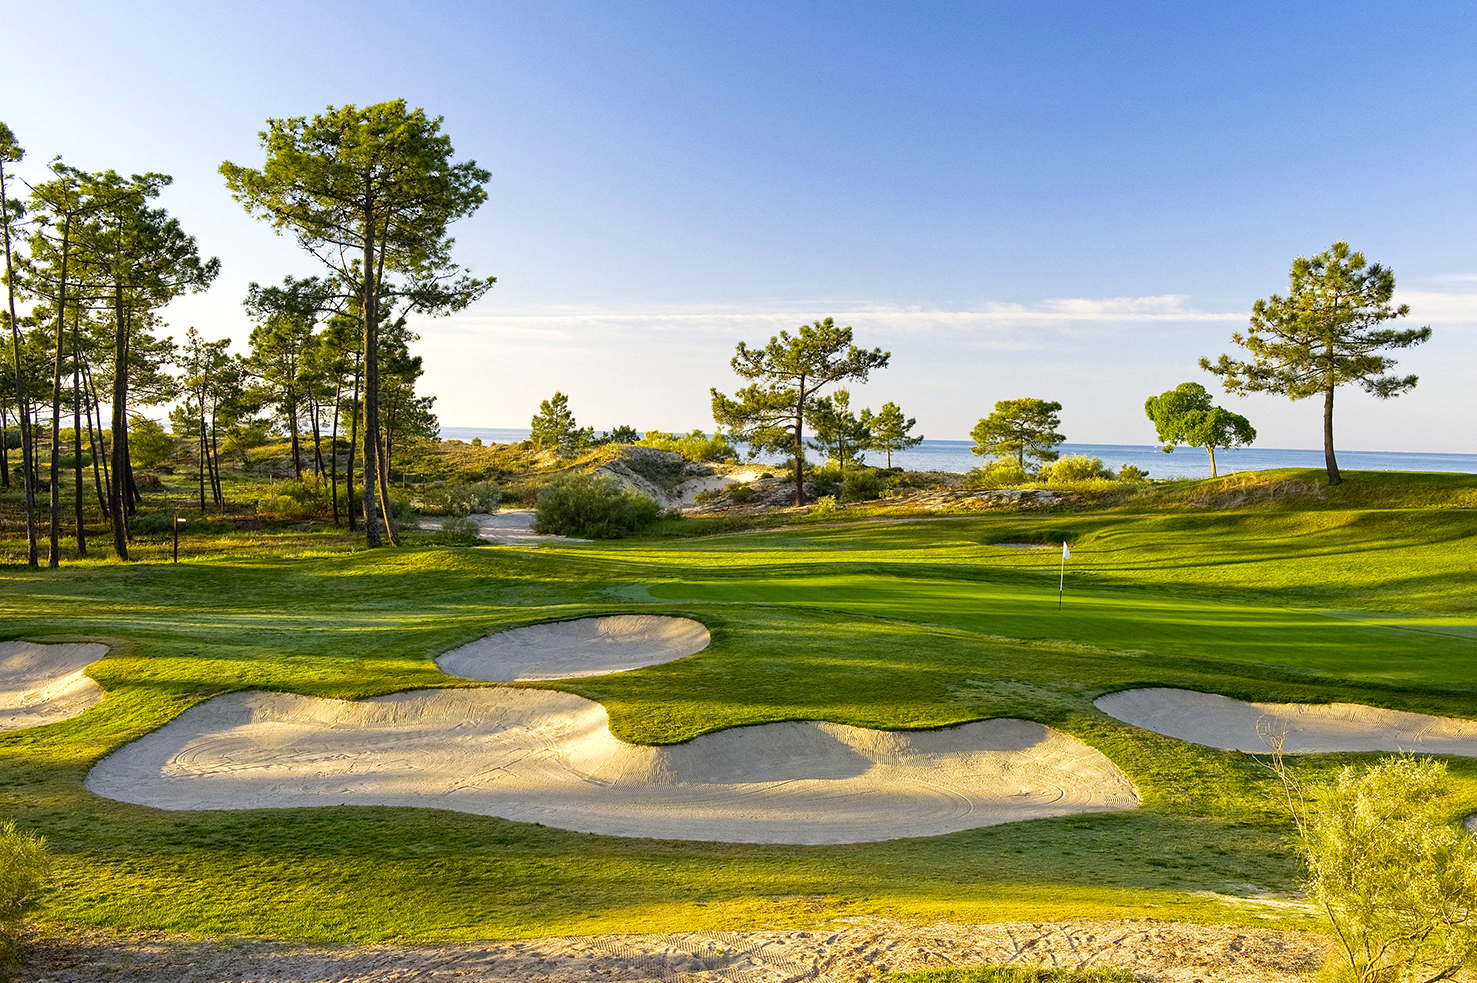 The dramatic par-3 2nd hole at Troia in Setubal, Portugal.